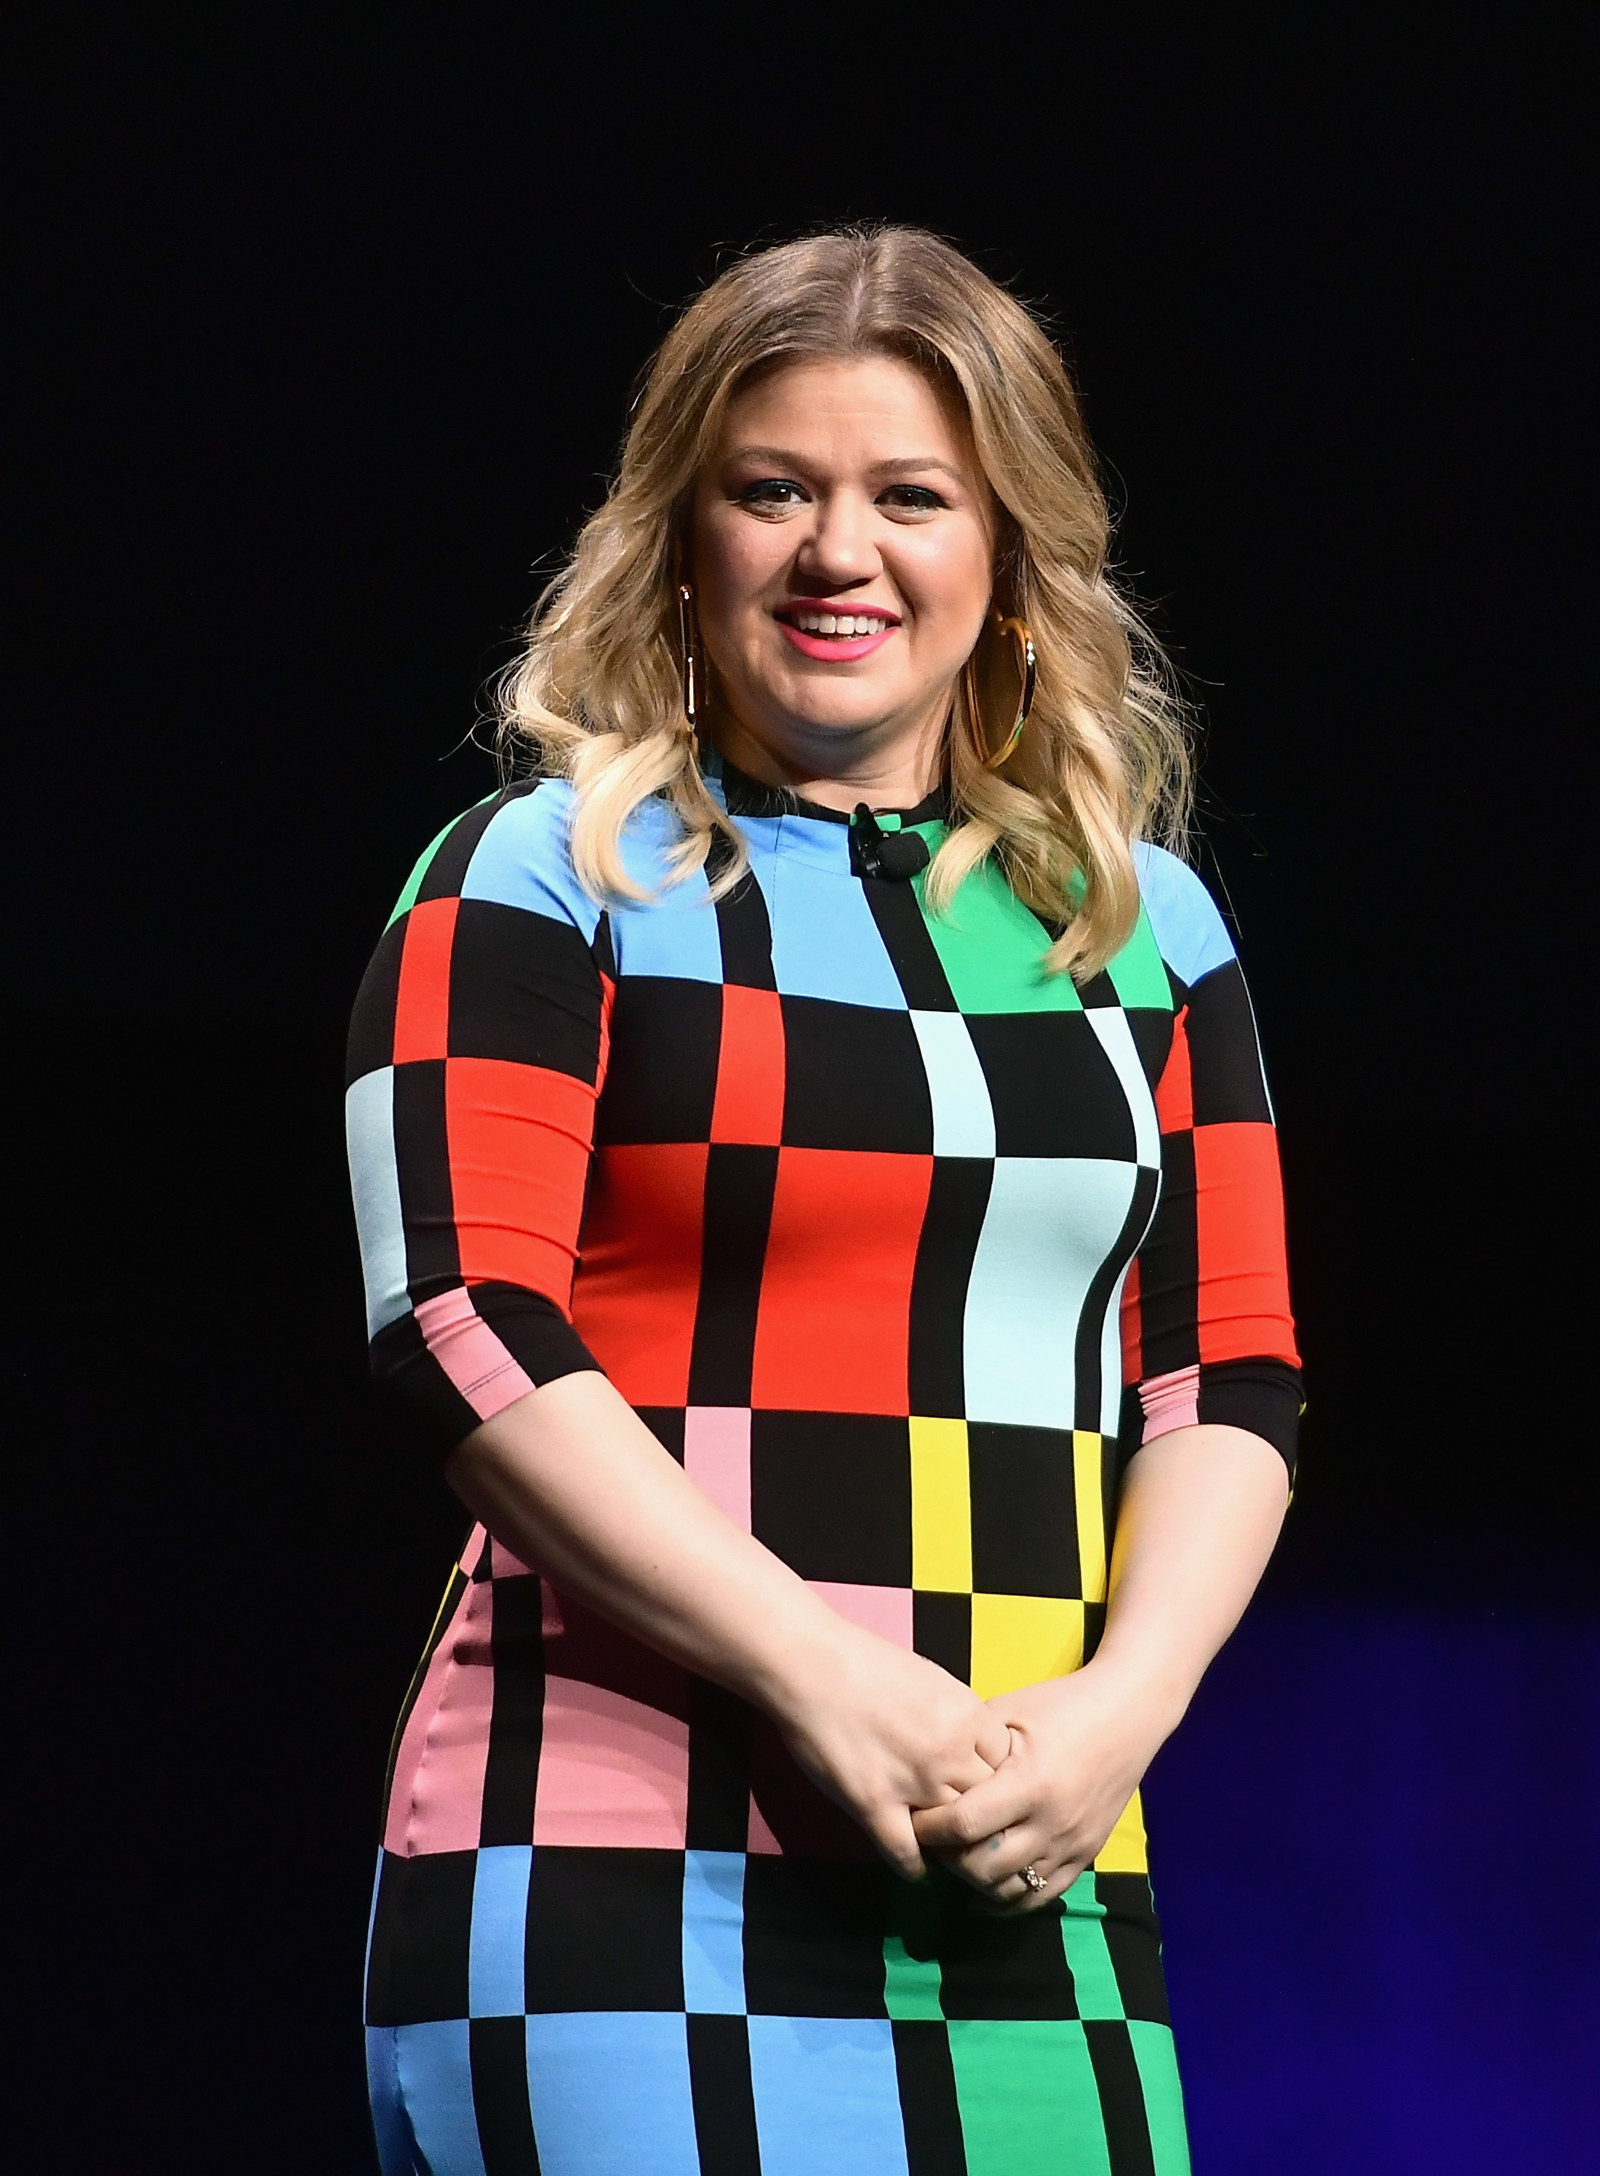 Kelly Clarkson Shut Down Rumors Of A Feud With Carrie Underwood In The Most Kelly Clarkson Way